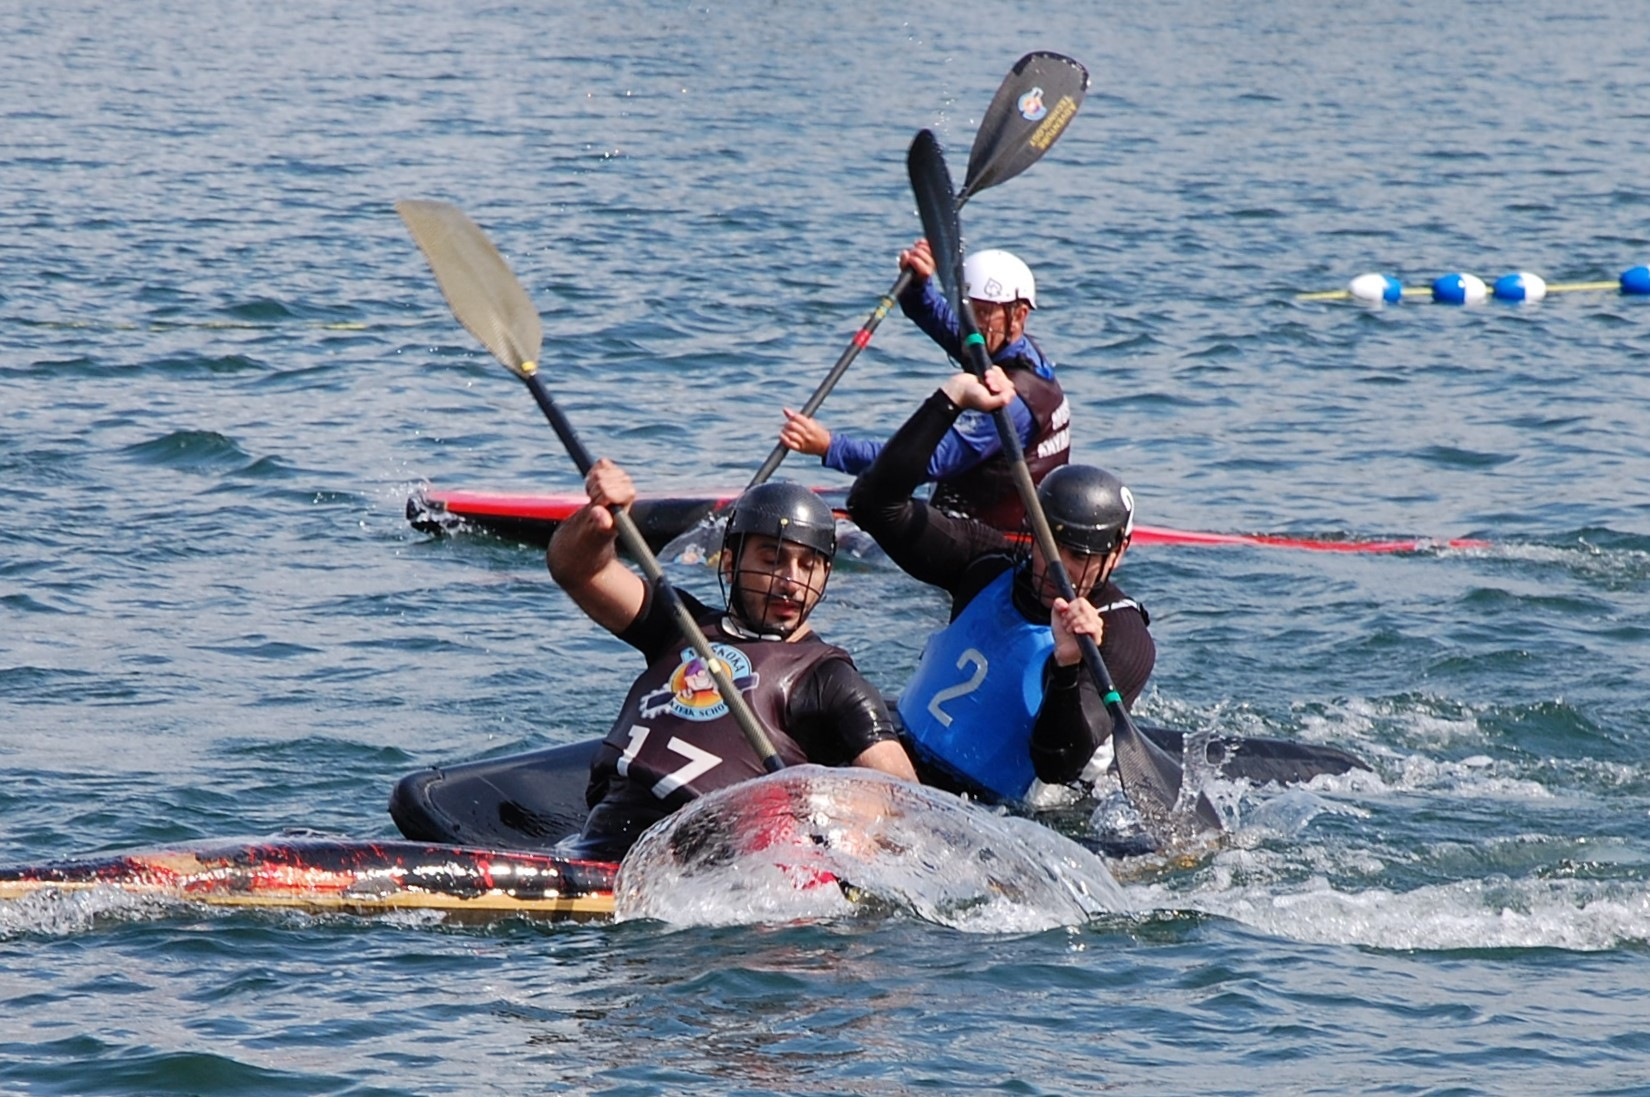 Kayak Water Polo by CindyLou